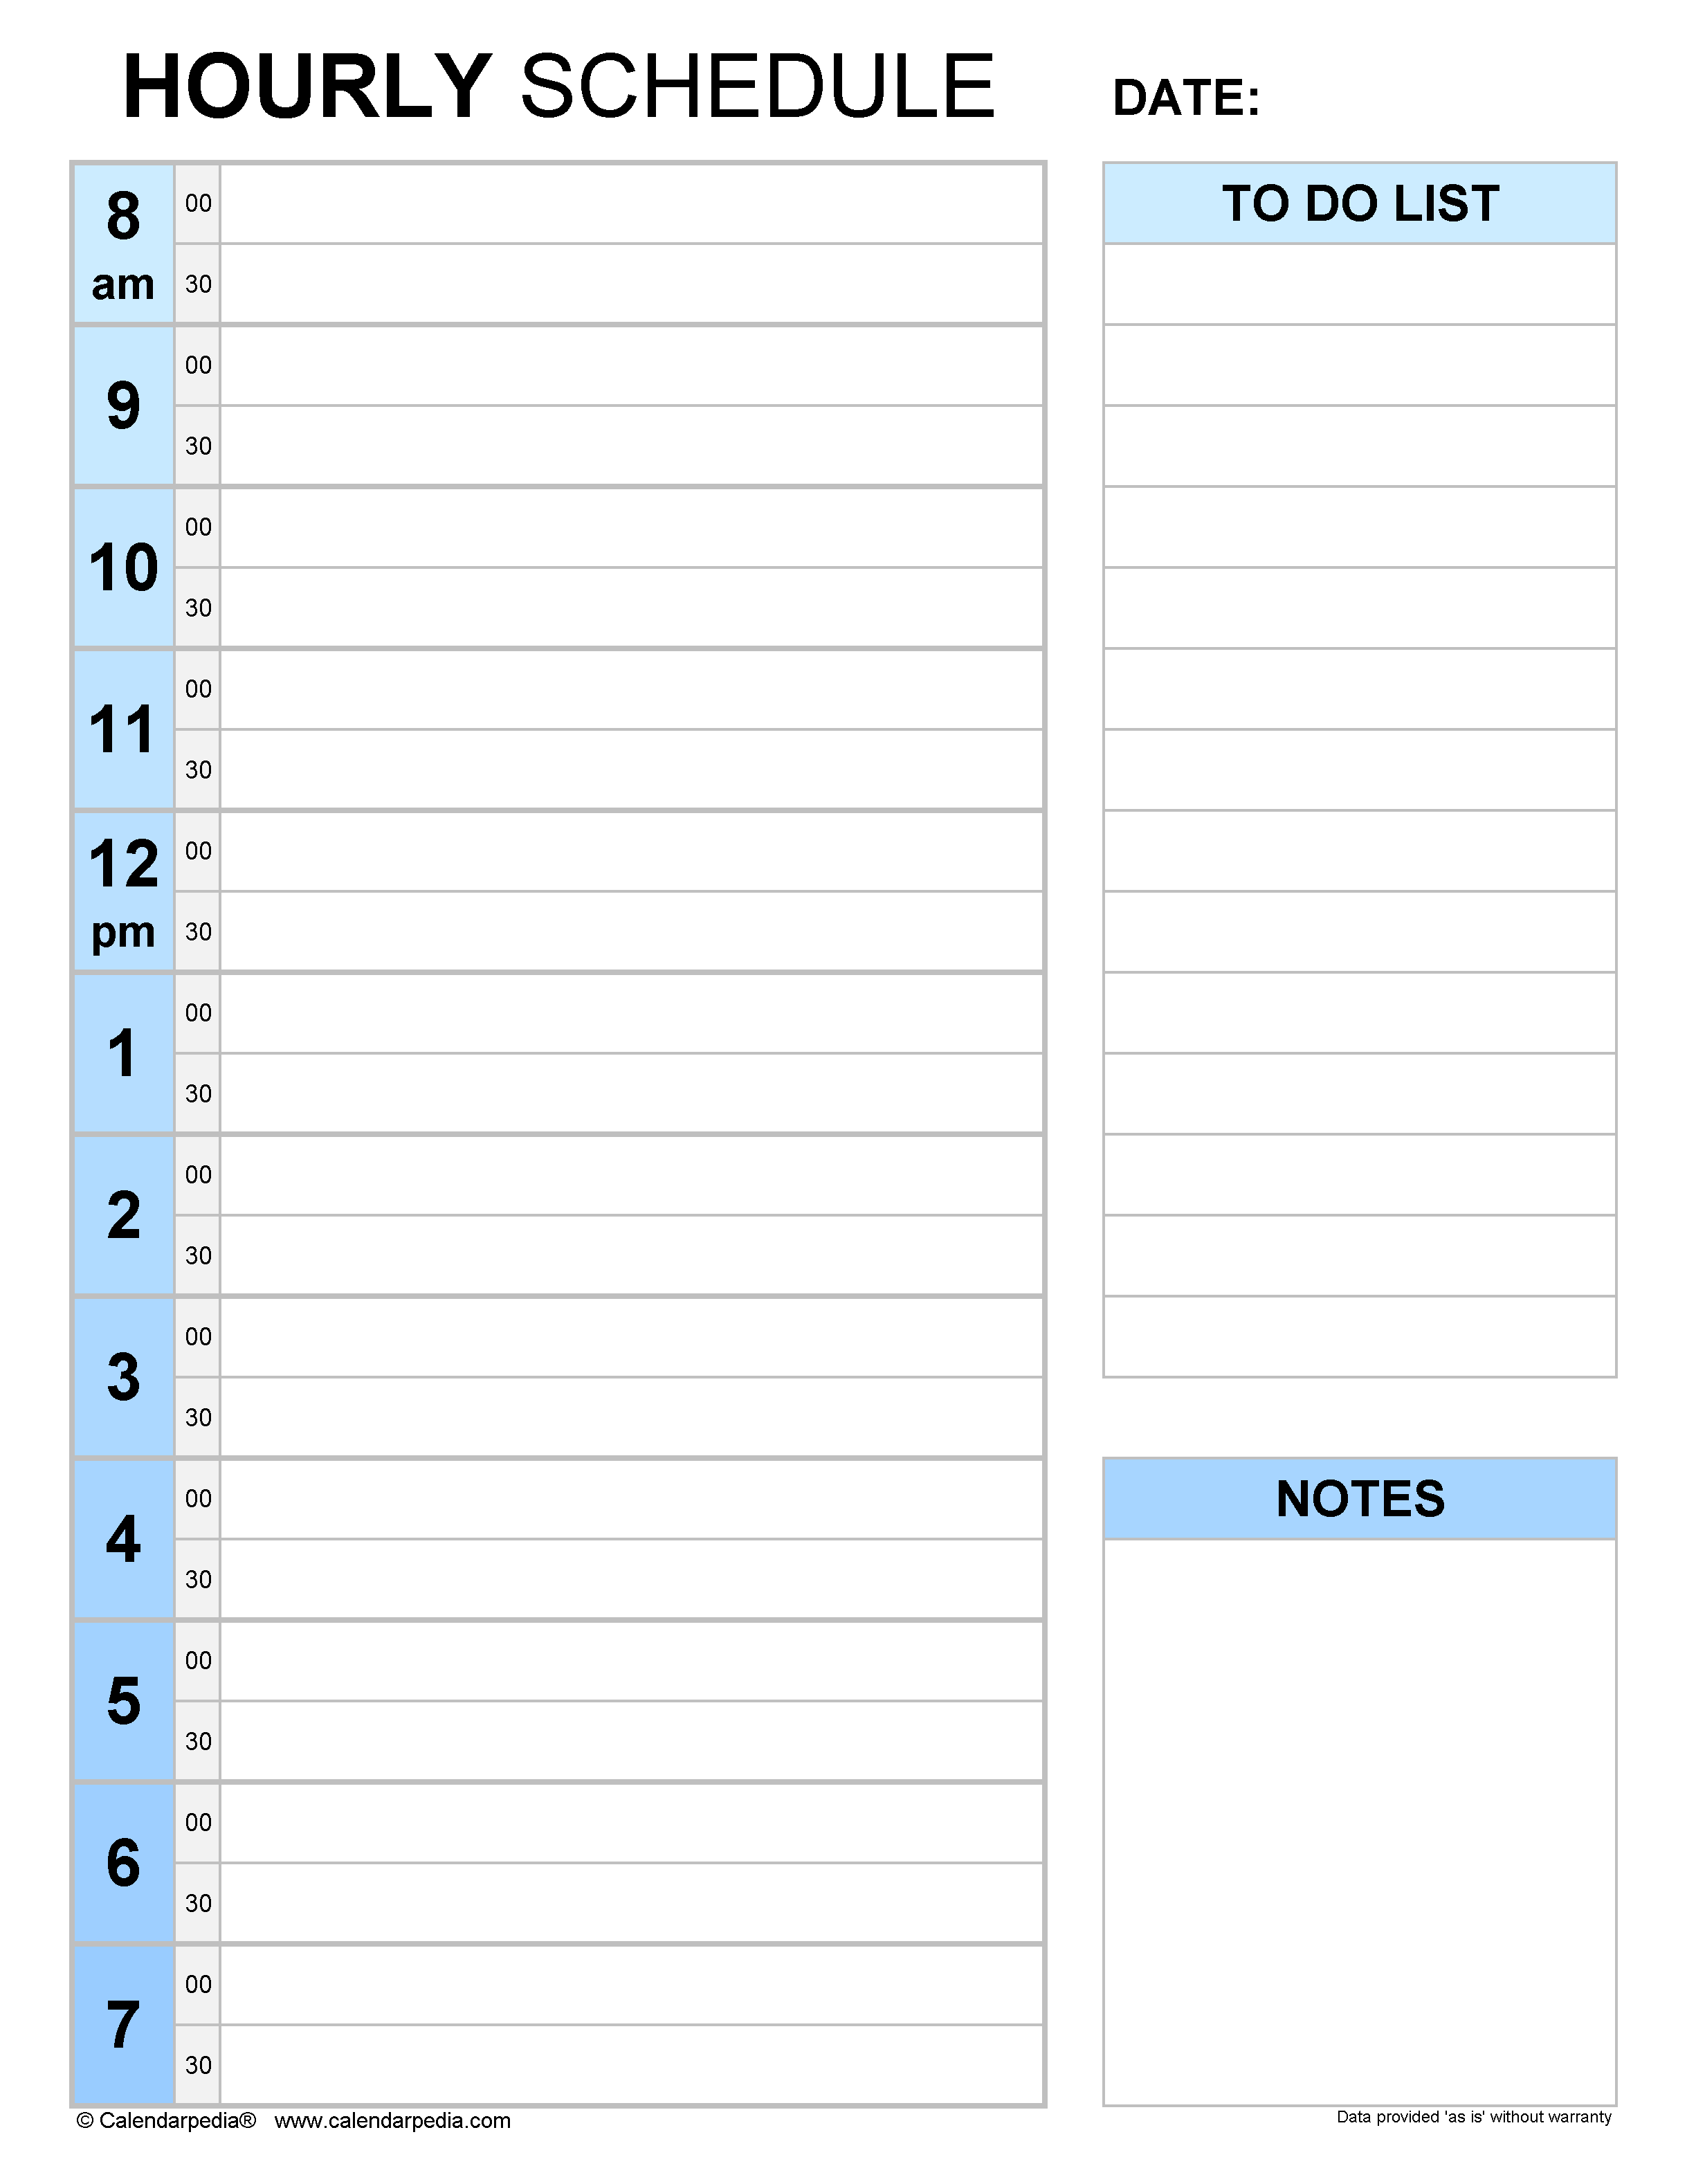 Hourly schedules in Microsoft Word format - 21+ templates With Hours Of Operation Template Microsoft Word